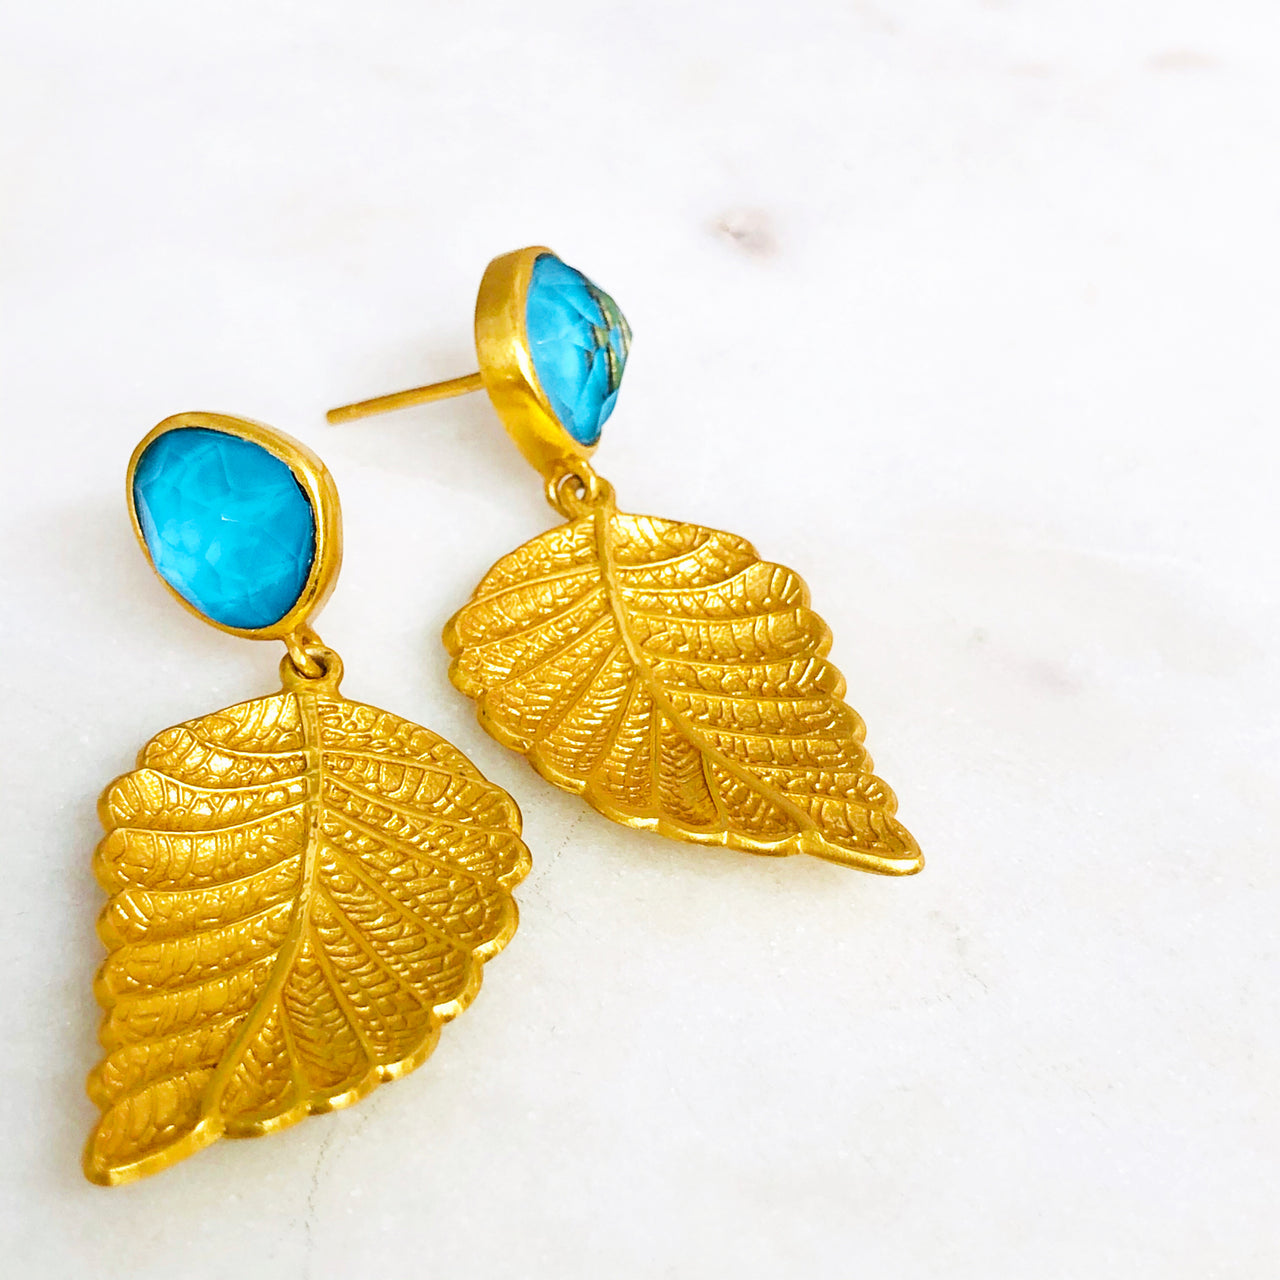 Gold Plate Turquoise and Quartz Earrings.